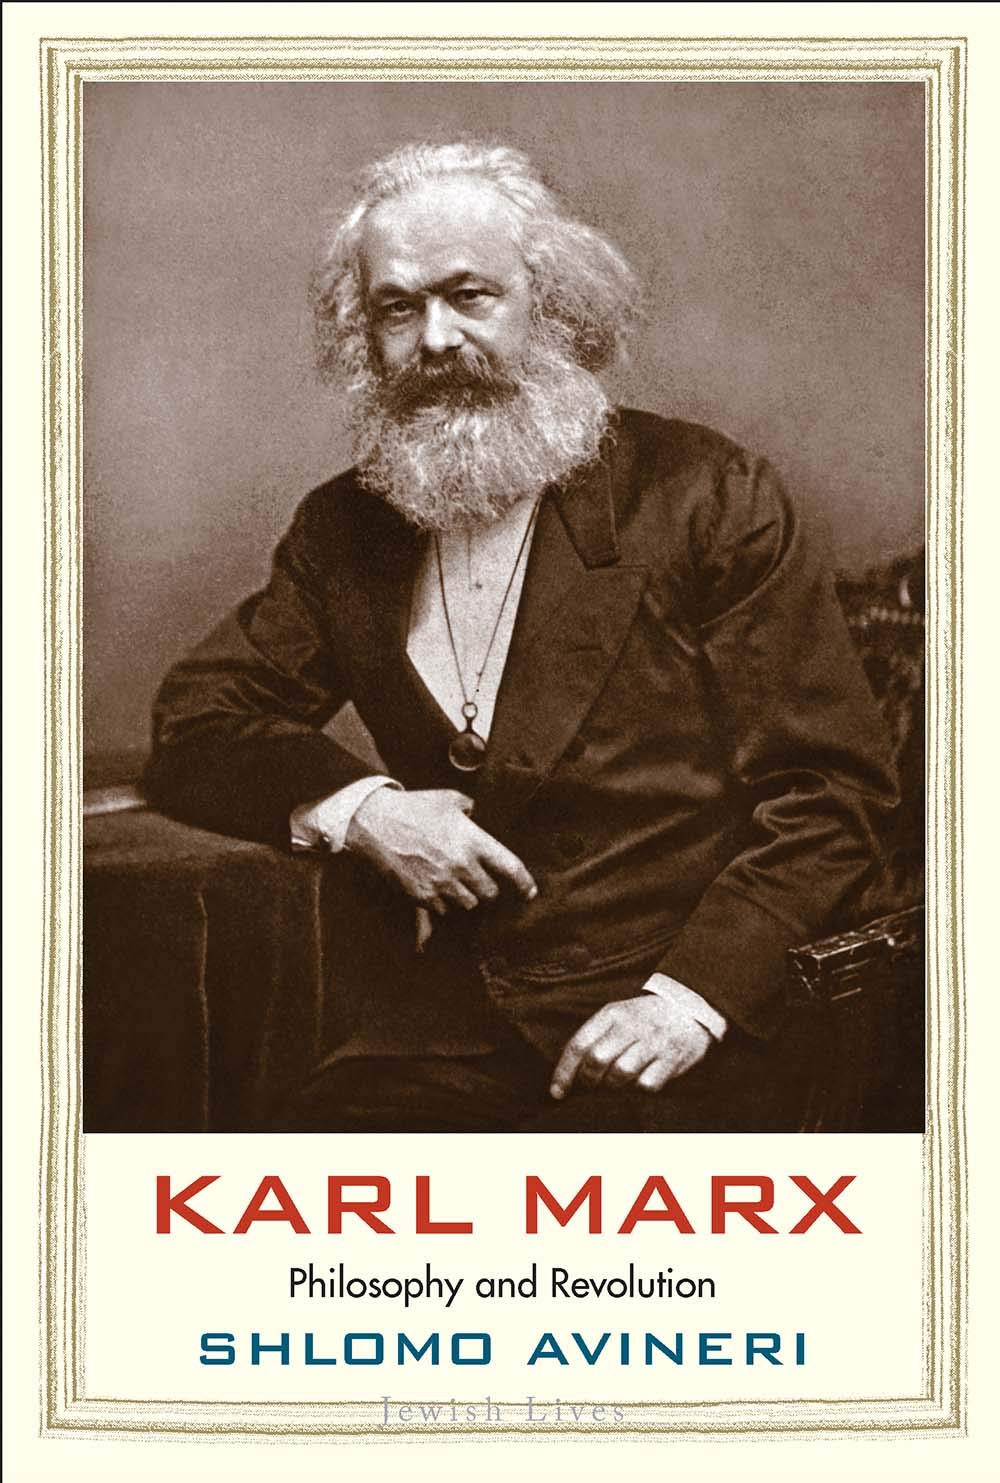 Marx: Philosophy and Revolution   by Shlomo Avineri Yale University Press, 2019